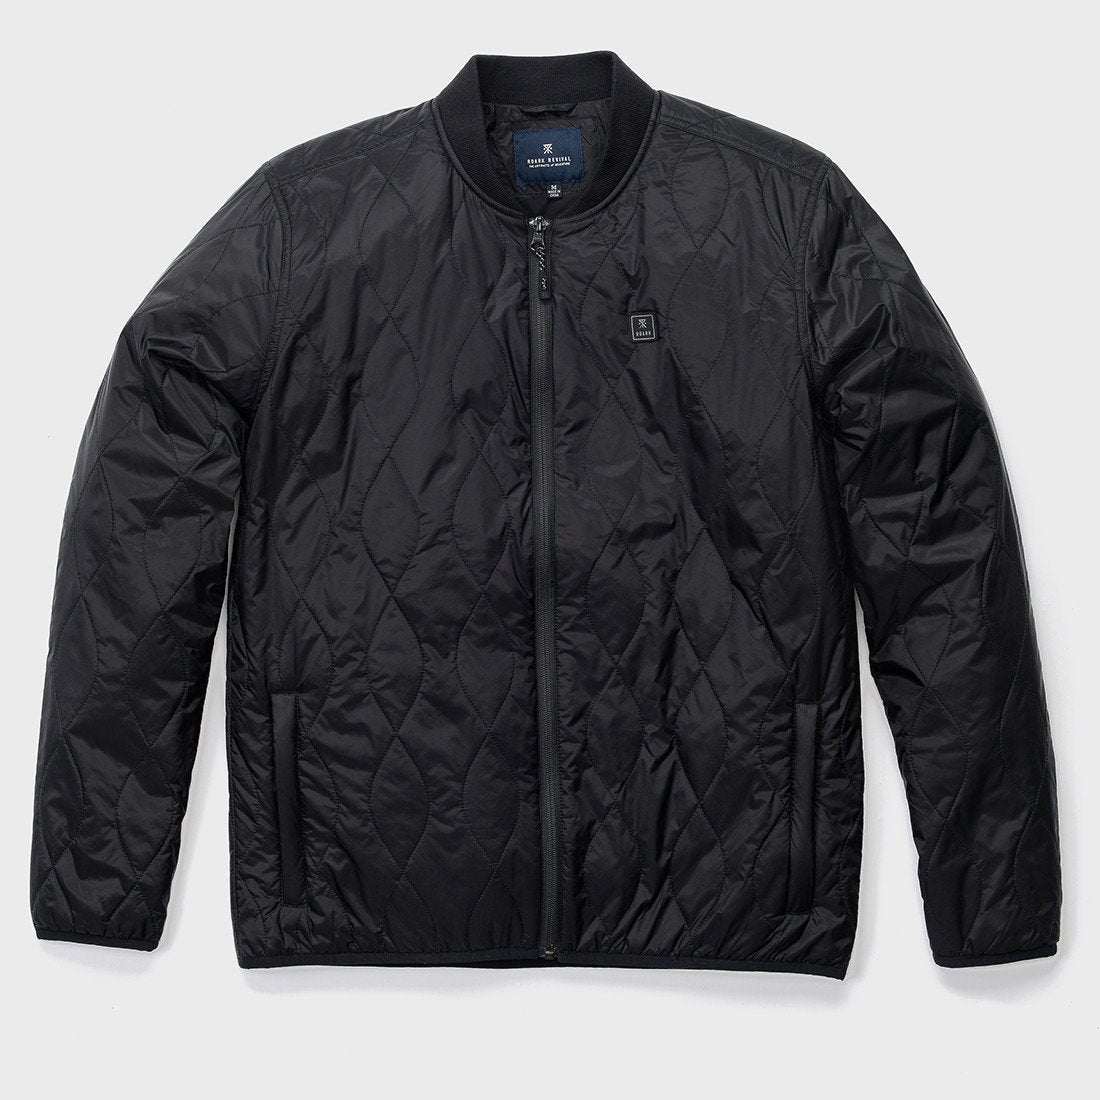 Roark Great Heights Jacket Black